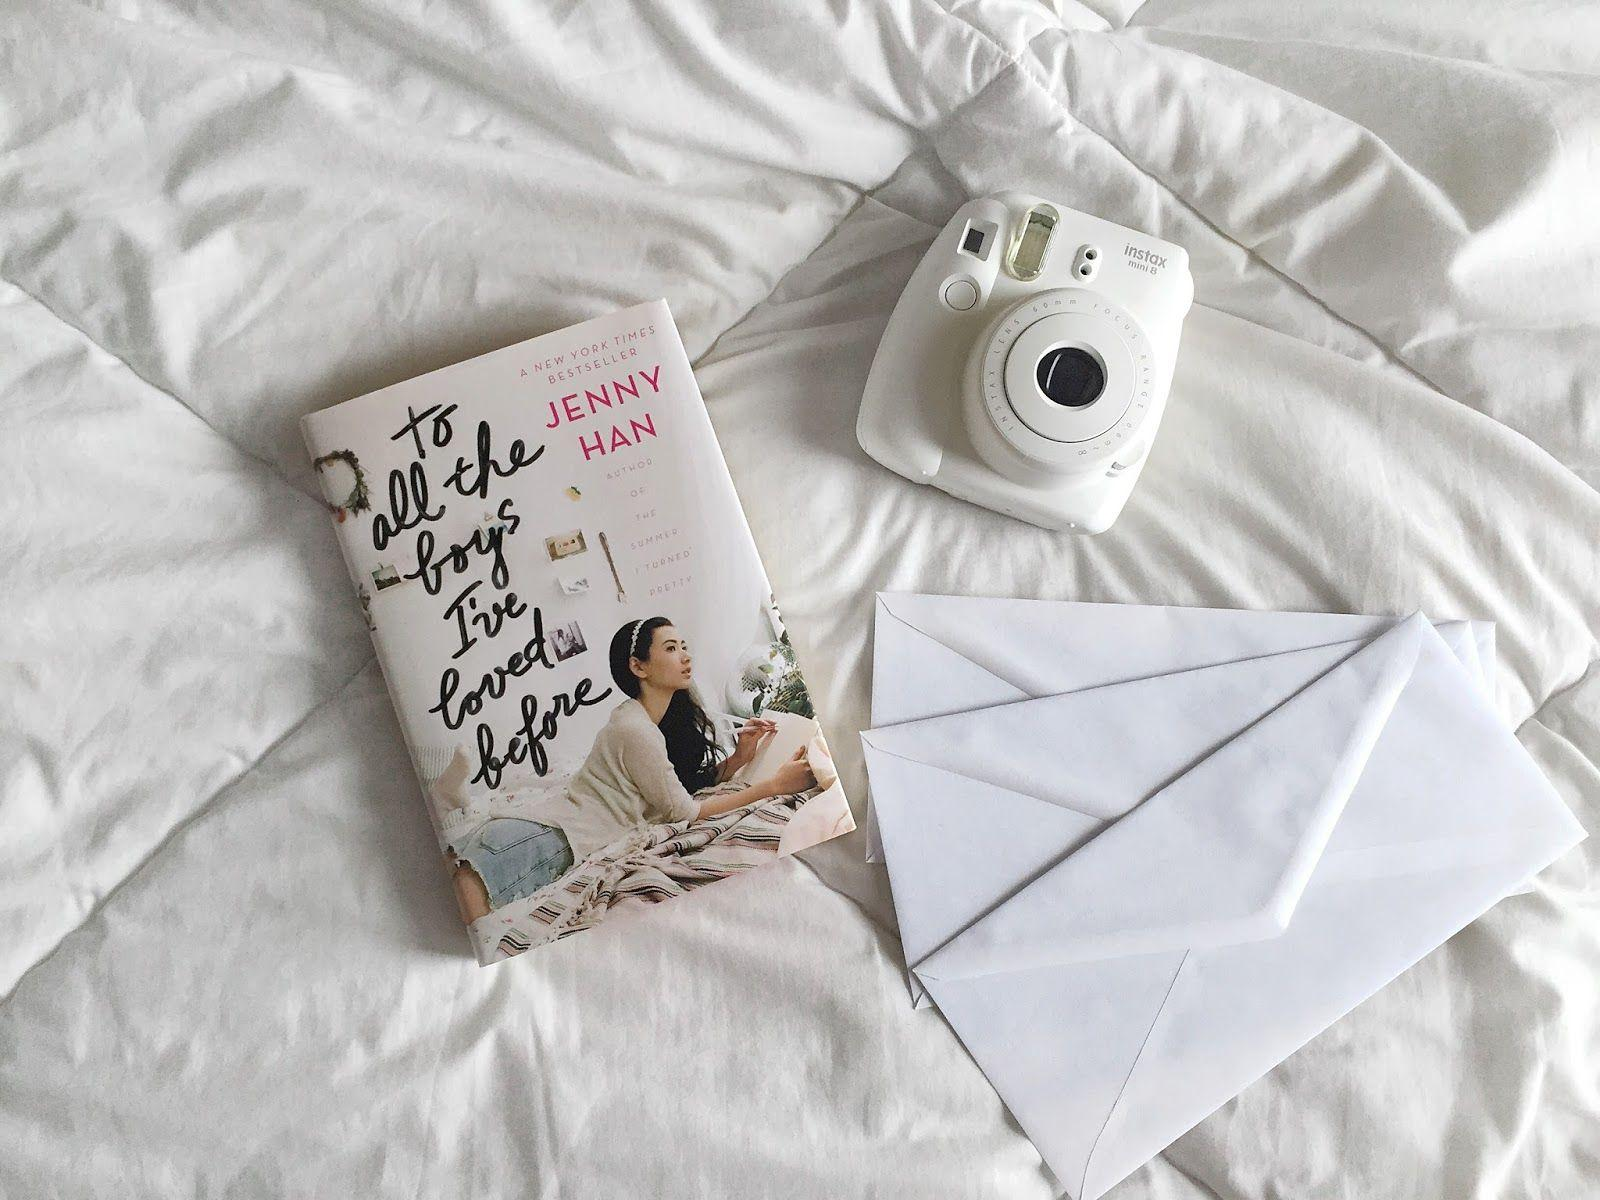 My Midnight Reads: Book Review: To all the Boys I've loved before by